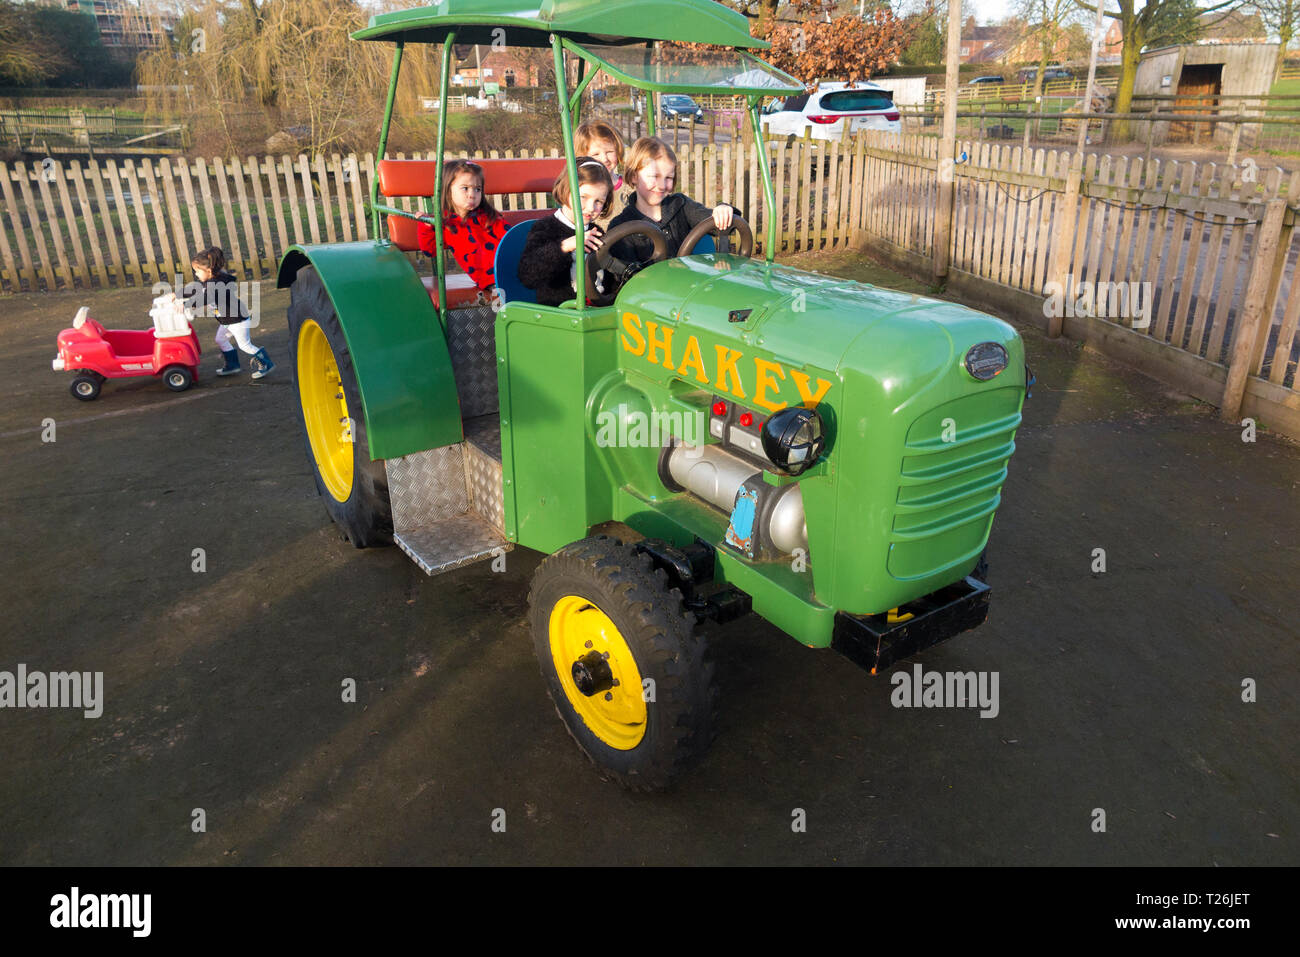 Kids / children / child on a life size model toy tractor of large scale size at a farm shop in Congleton, Cheshire England UK (106) - Stock Image